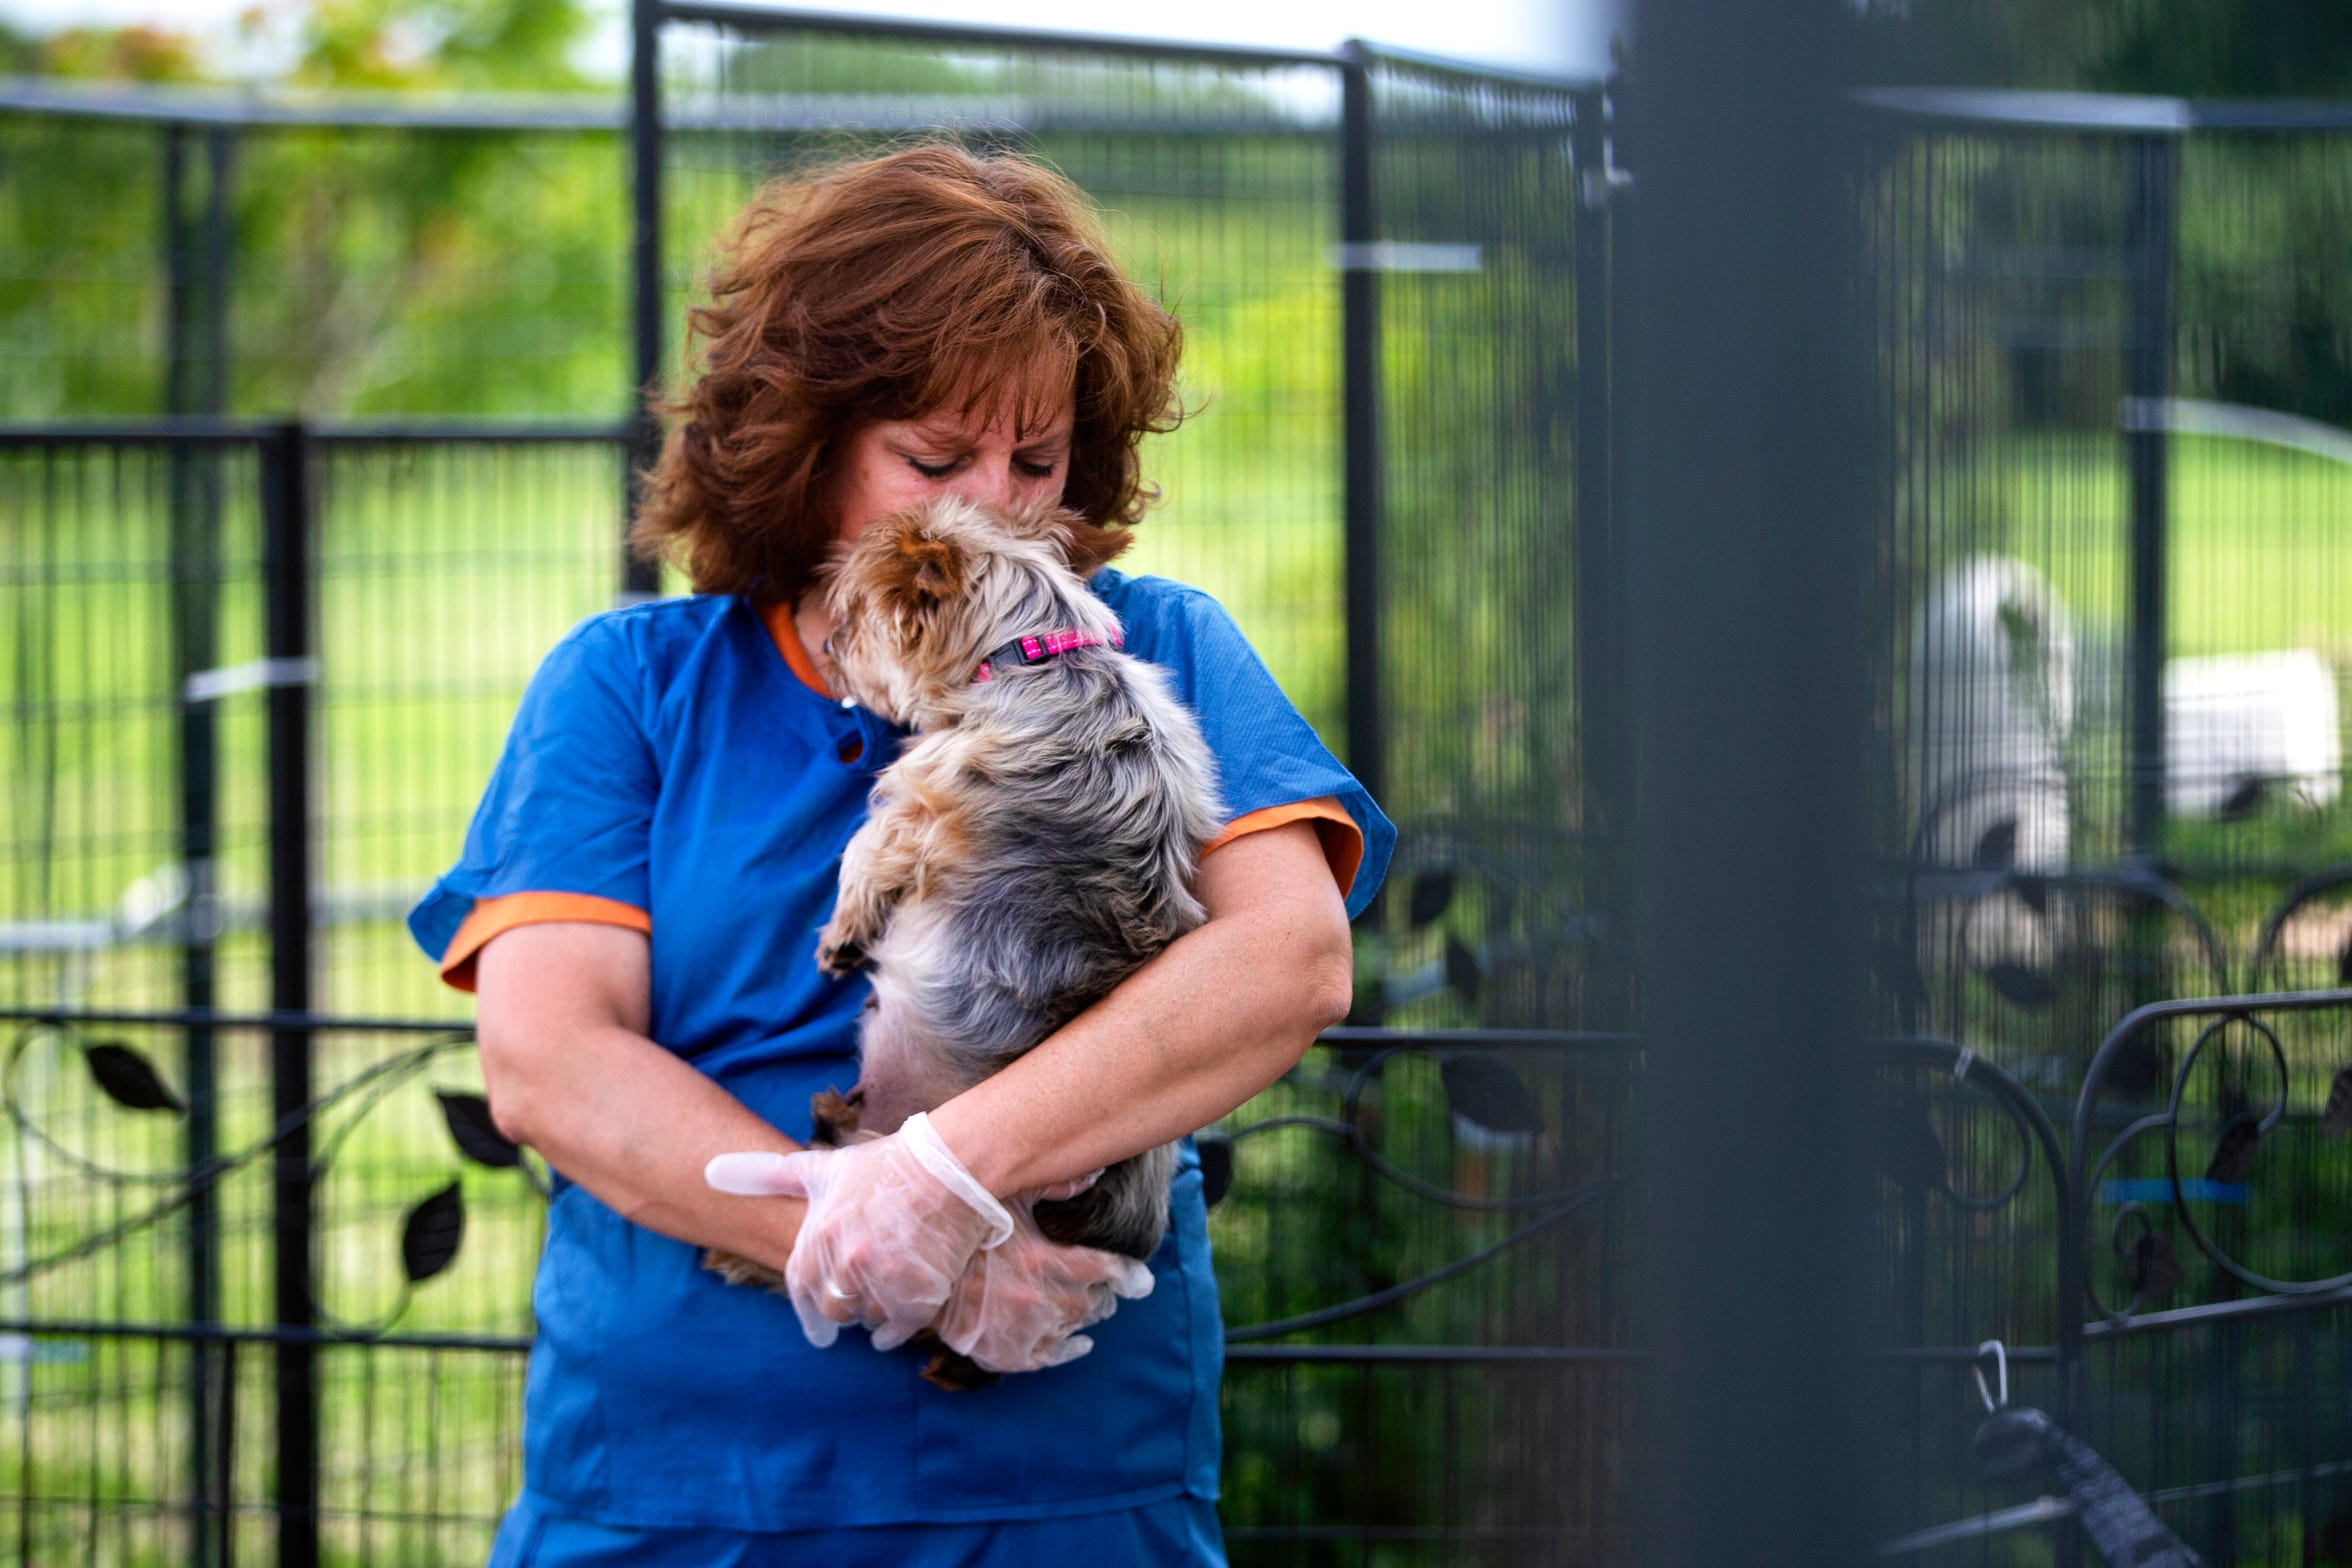 Amy Heinz holds Australian silver terrier Lady Abagail, 10, outside AHeinz57 Pet Rescue & Transport in De Soto, Iowa, on Aug. 1, 2019. Over 200 dogs were sold from a puppy mill in May, and Heinz bought 31 of them to find them each rescue homes. Despite no official diagnoses, Lady is one of 31 dogs quarantined for almost three months due to possible risks of spreading canine brucellosis.